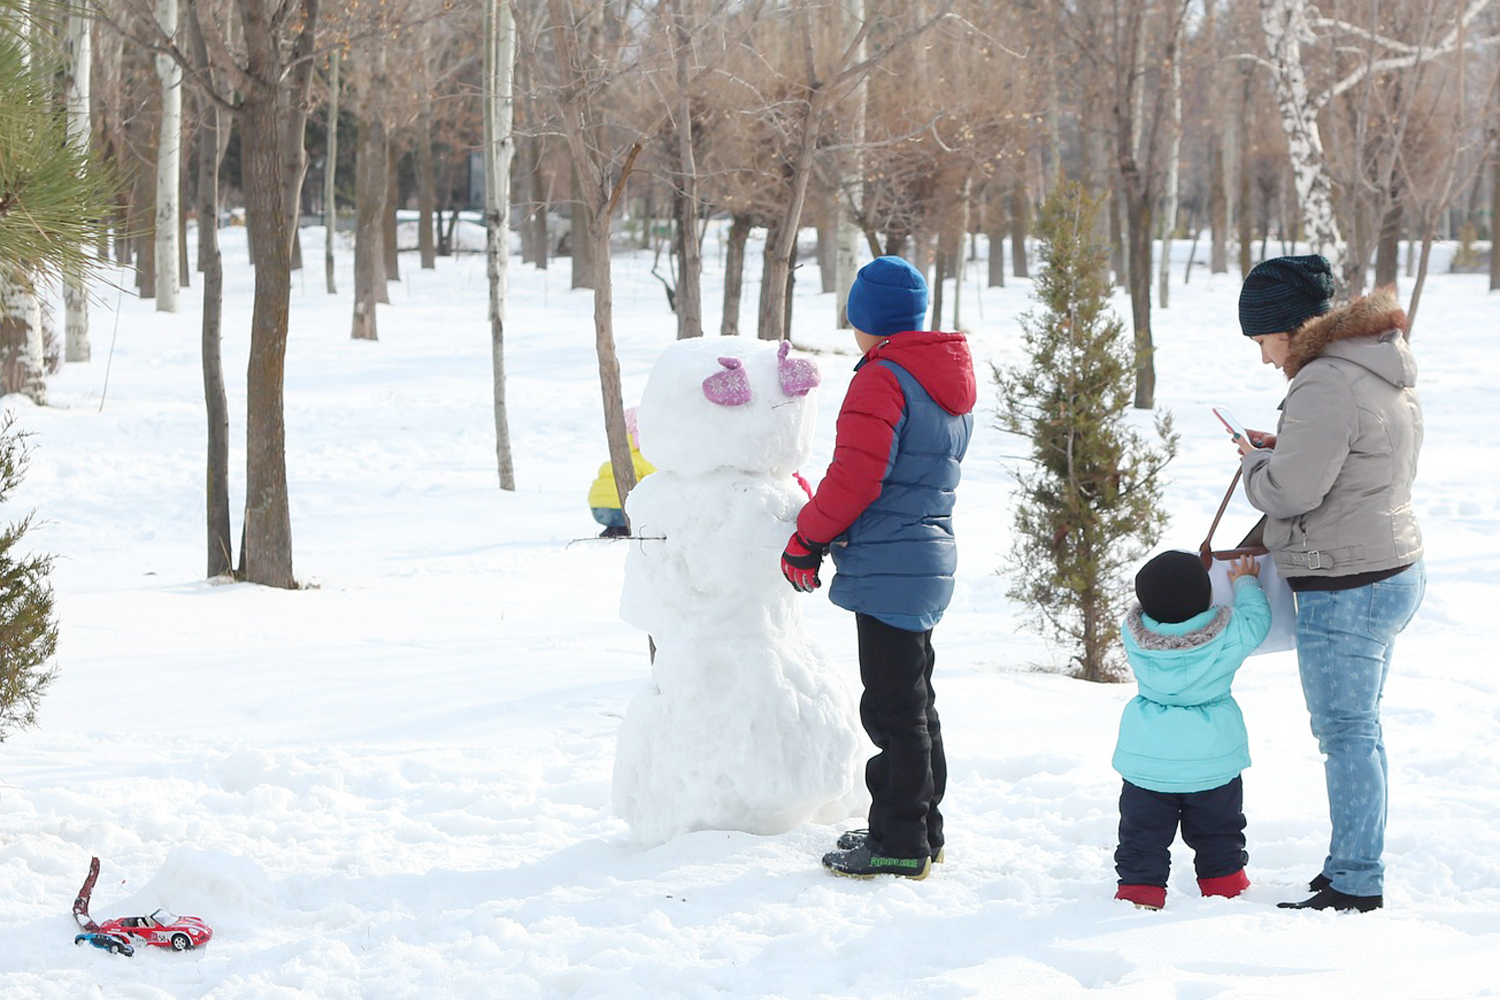 Enjoy a cheerfully chilly day outdoors with family and friends with these tips about enjoyable winter time activities.